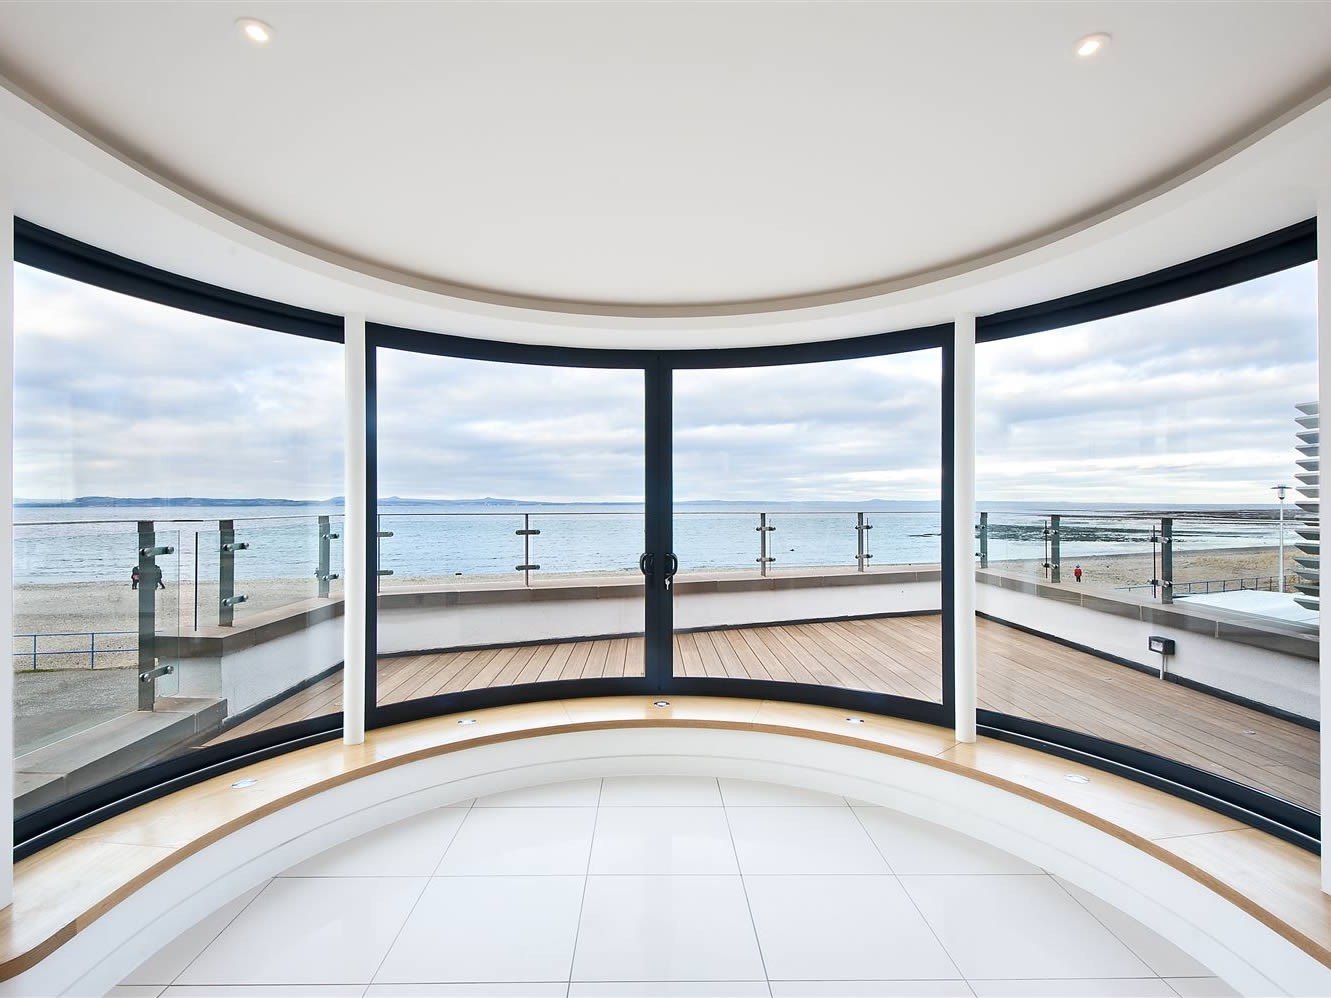 Curved windows thrust for the view at Promenade House